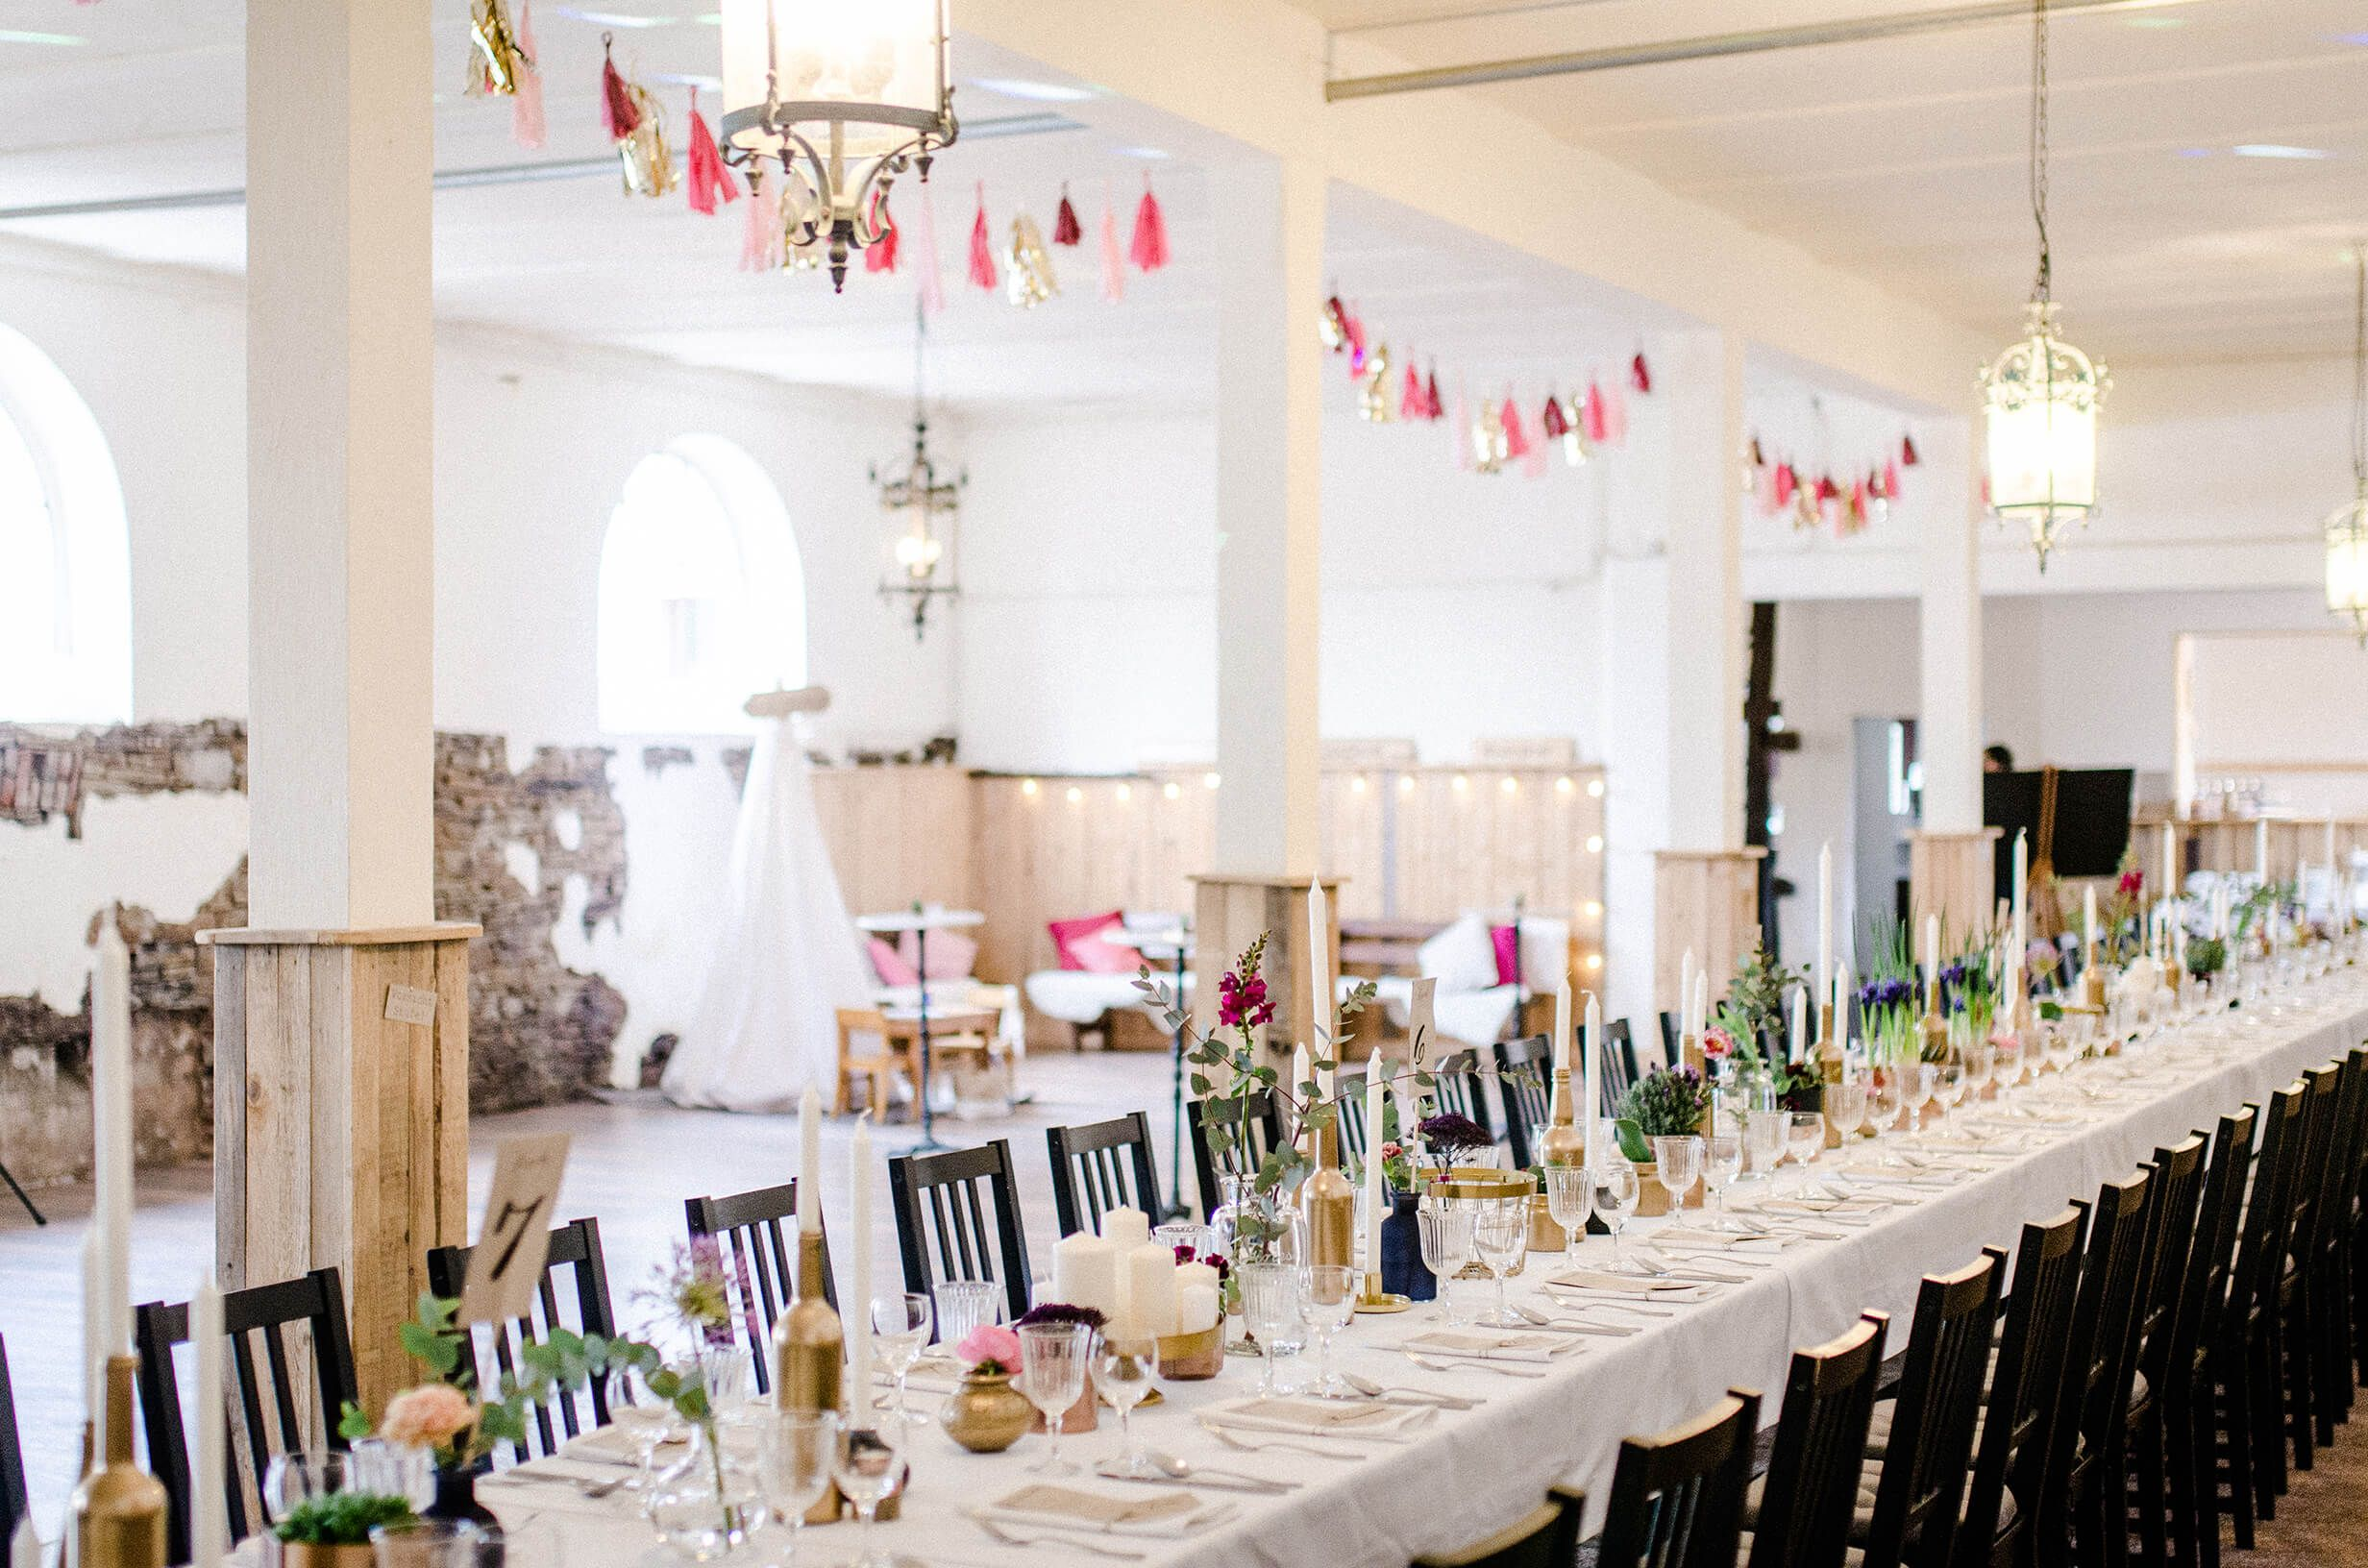 Table Decor Hochzeit Andy Ina Lange Tafel Dekoration In Messing